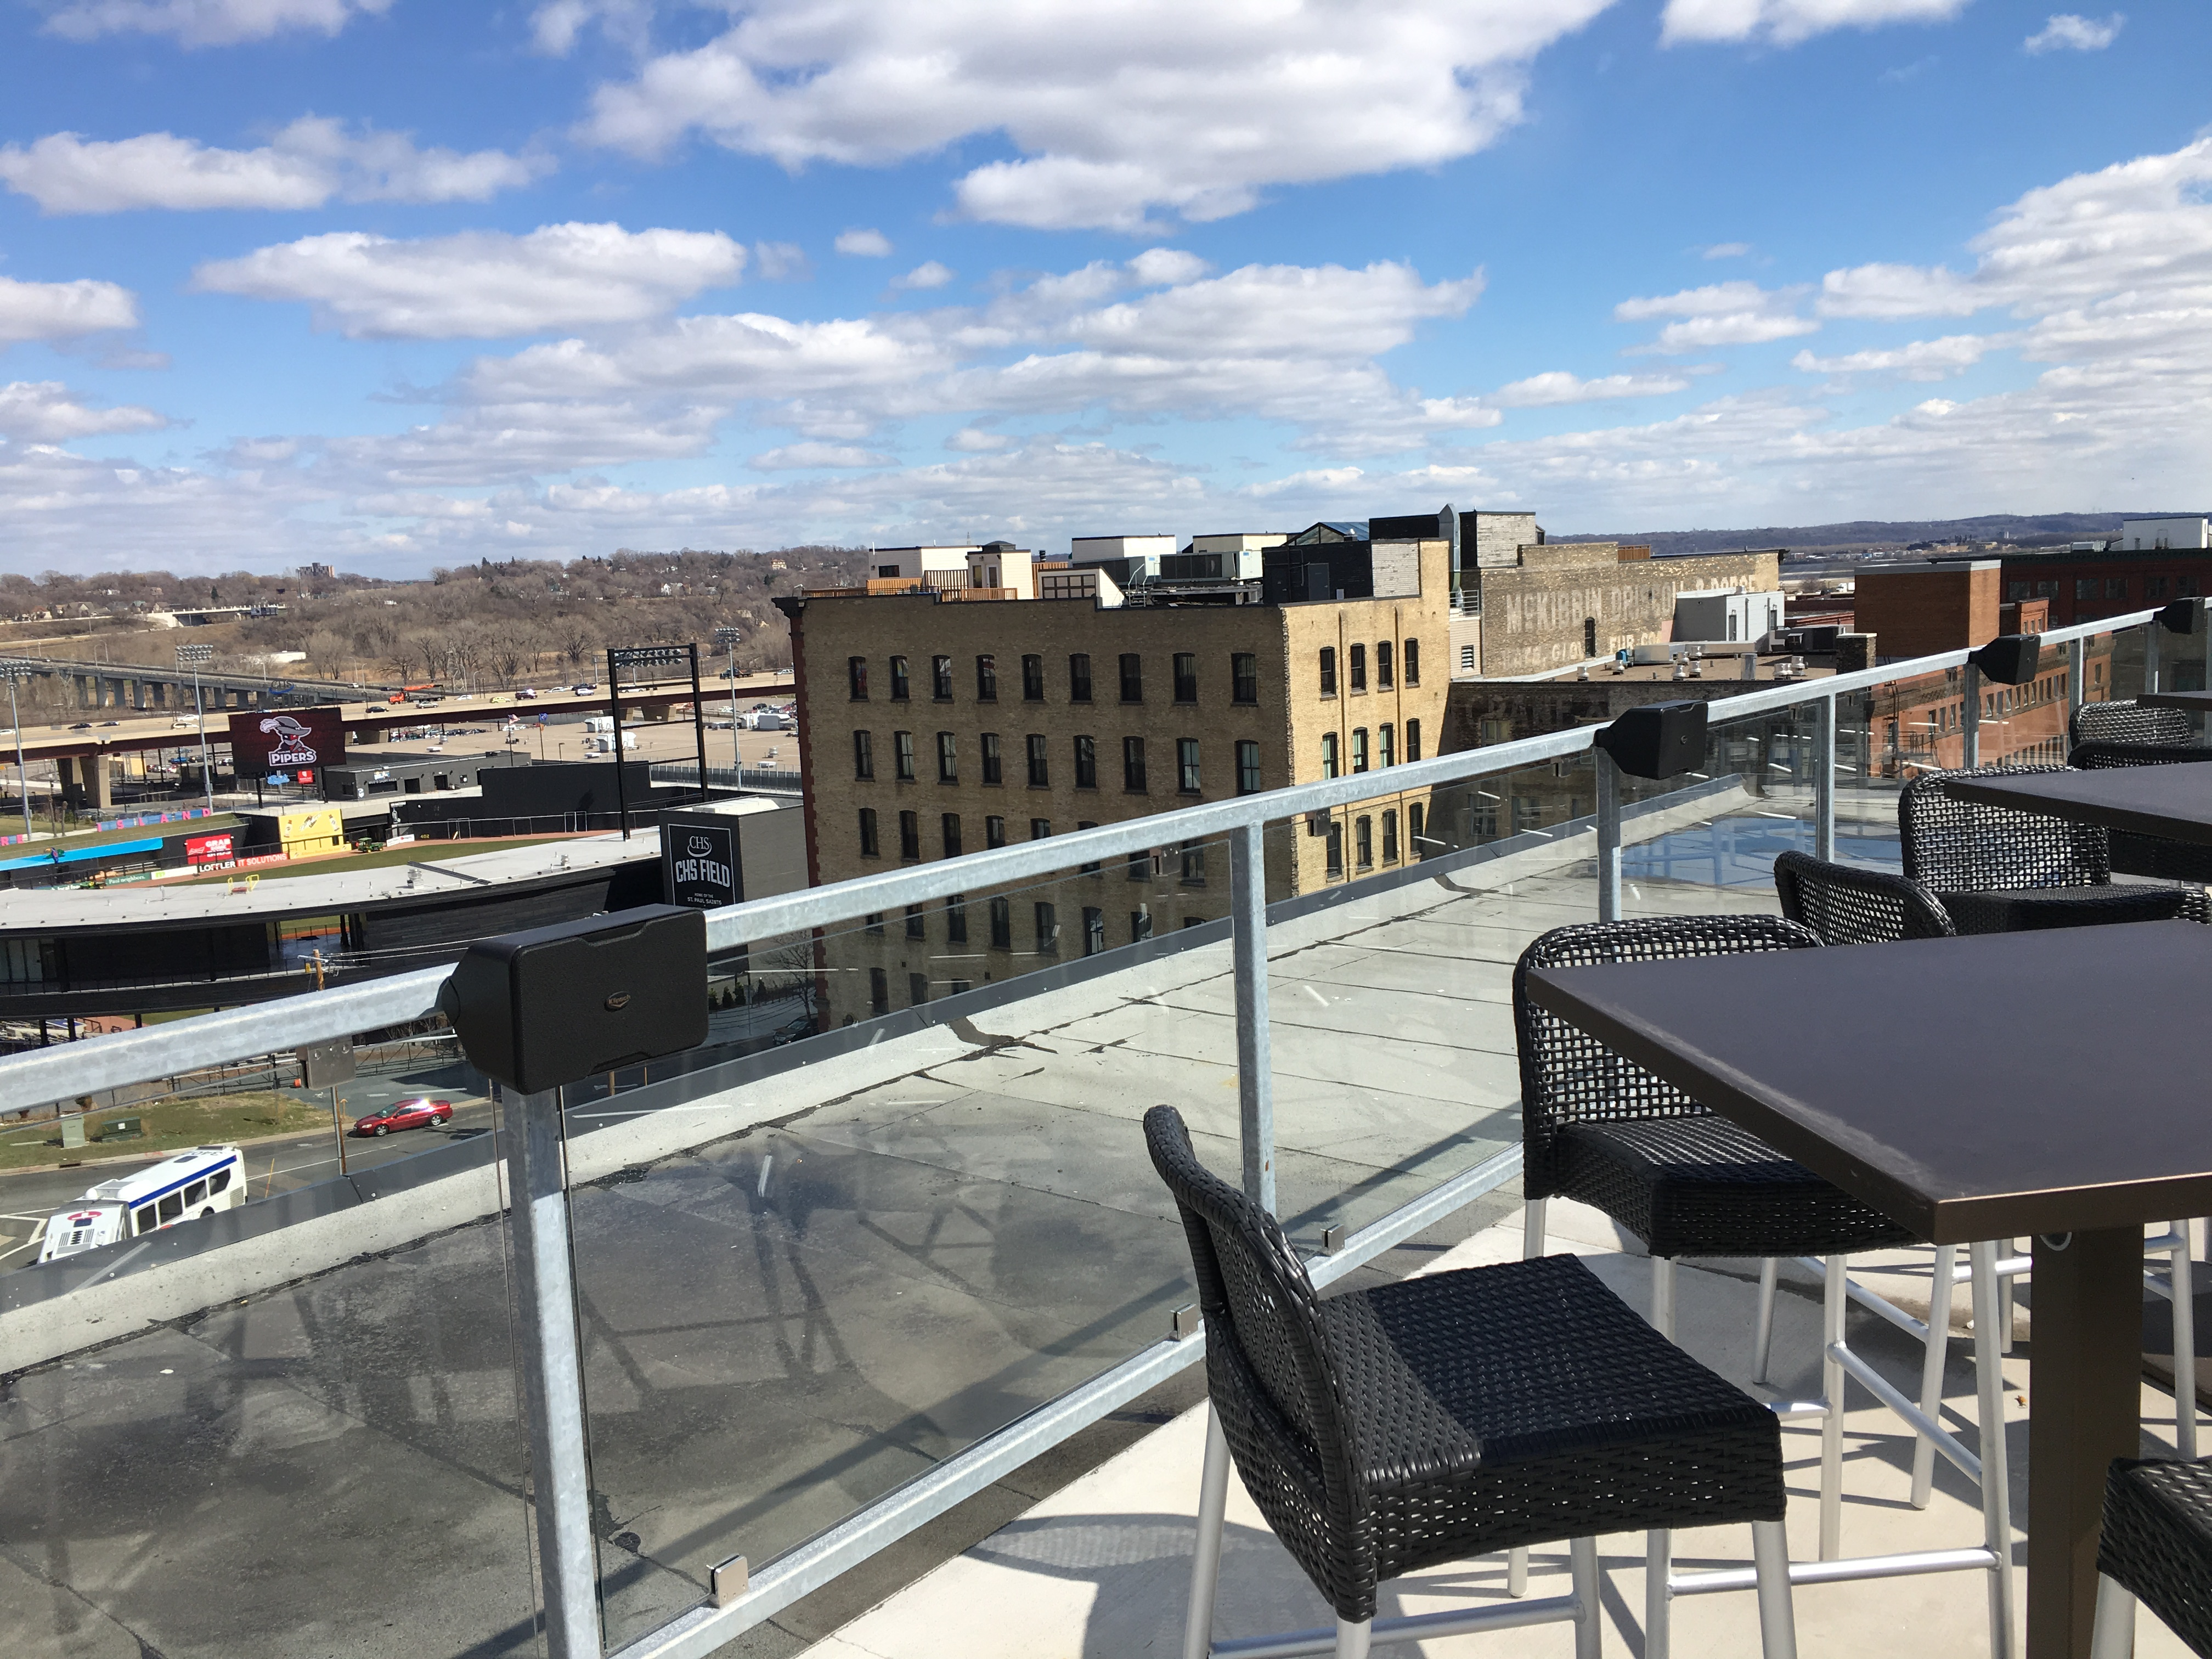 Sunshiny A Sneak Peek At Ox Cart Ale Roof Patio View House Menu Prices Viewhouse Bar Denver View From Patio At Ox Cart Ale House curbed The View House